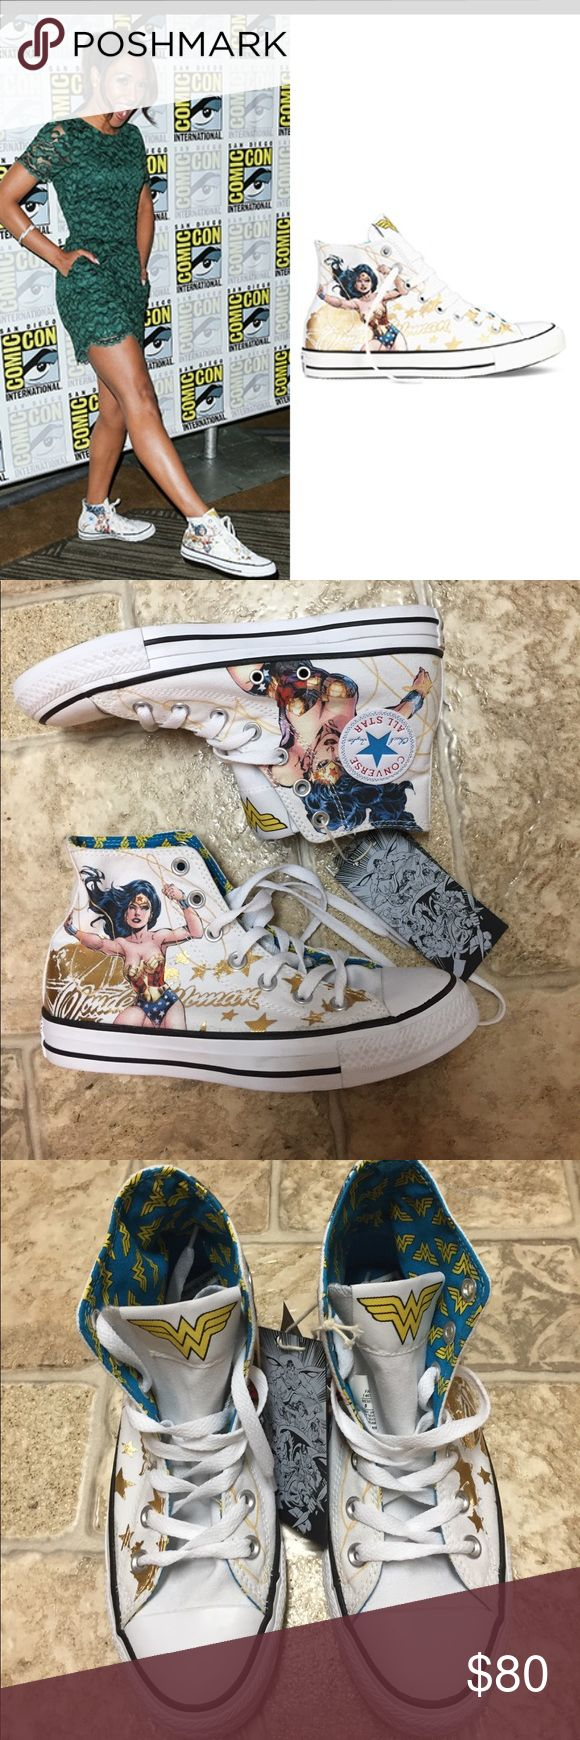 Wonder Woman  Converse All Star NWT Awesome Wonder Woman converse with white background, white laces. Never worn; NWT. Women's size 7, men's size 5. Converse Shoes Athletic Shoes